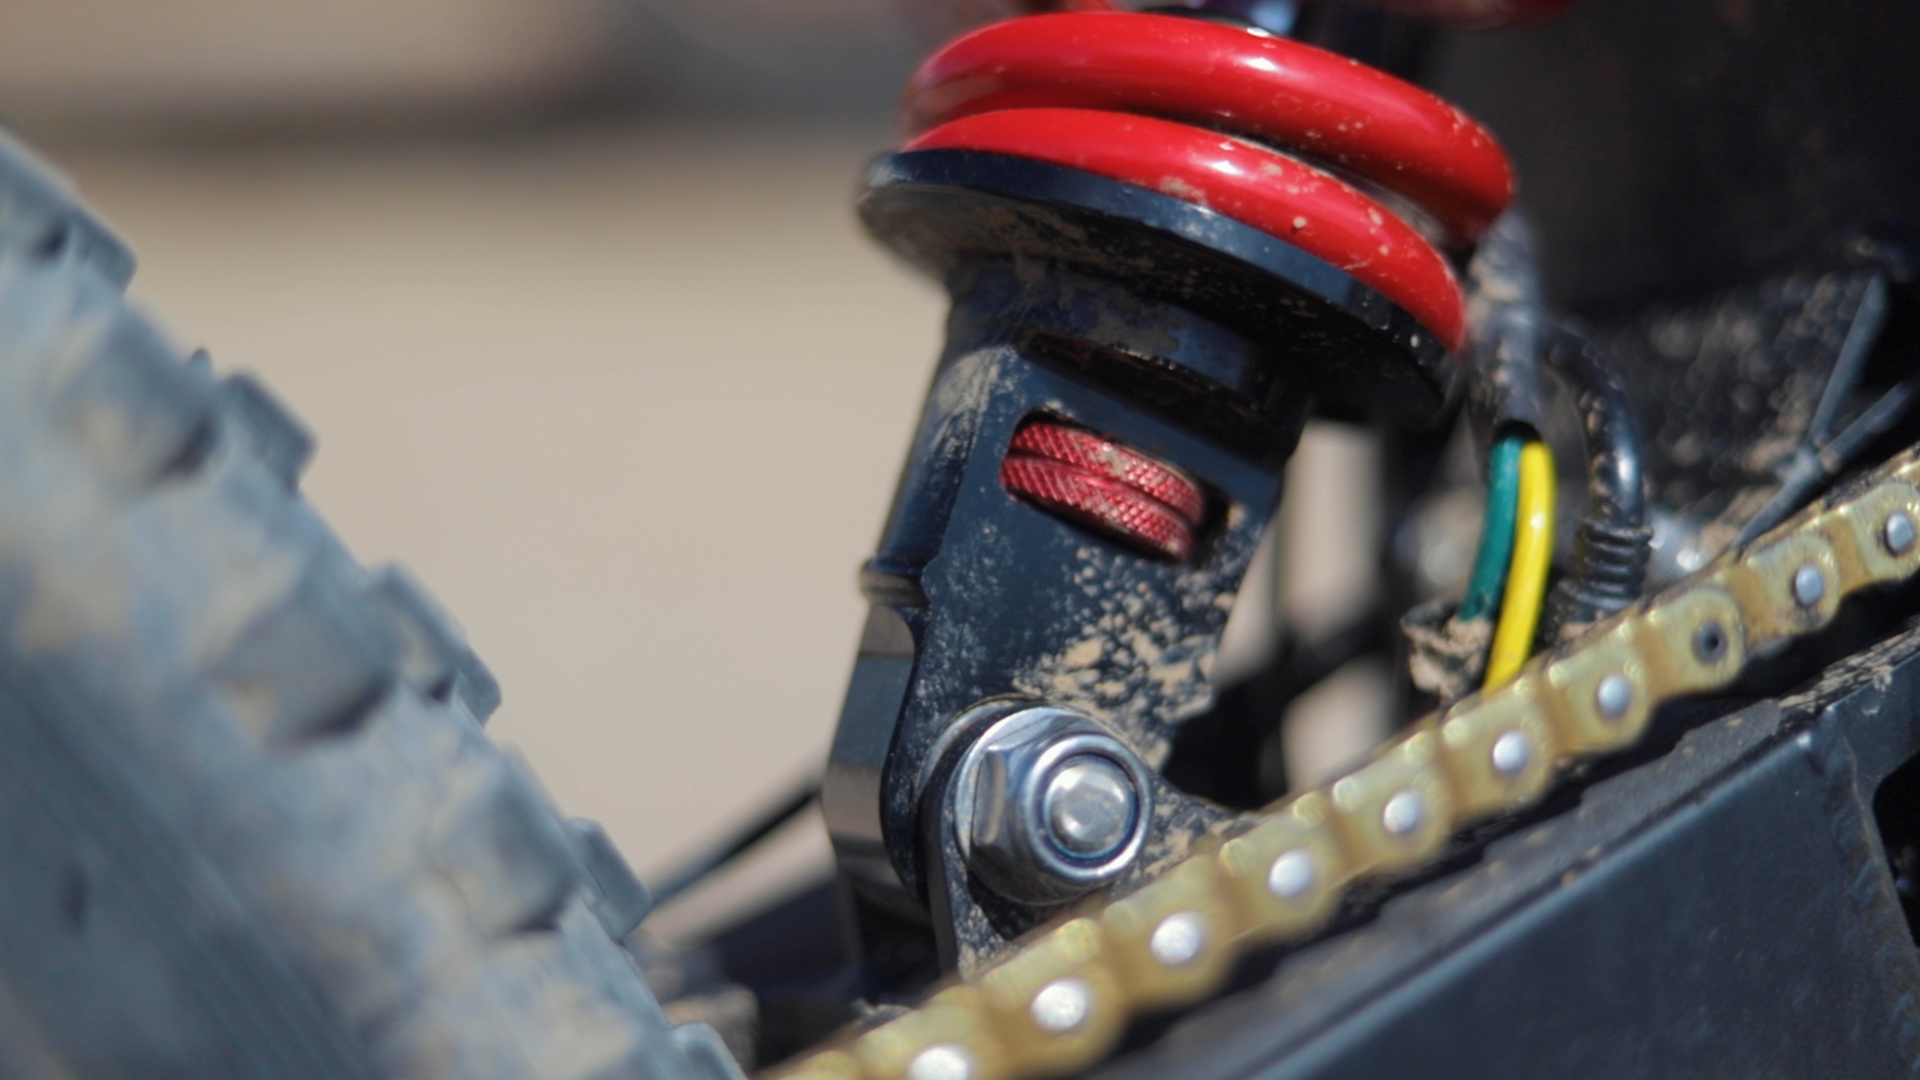 electrified-reviews-stealth-b52-bomber-electric-bike-review-rear-suspension-adjust.jpg